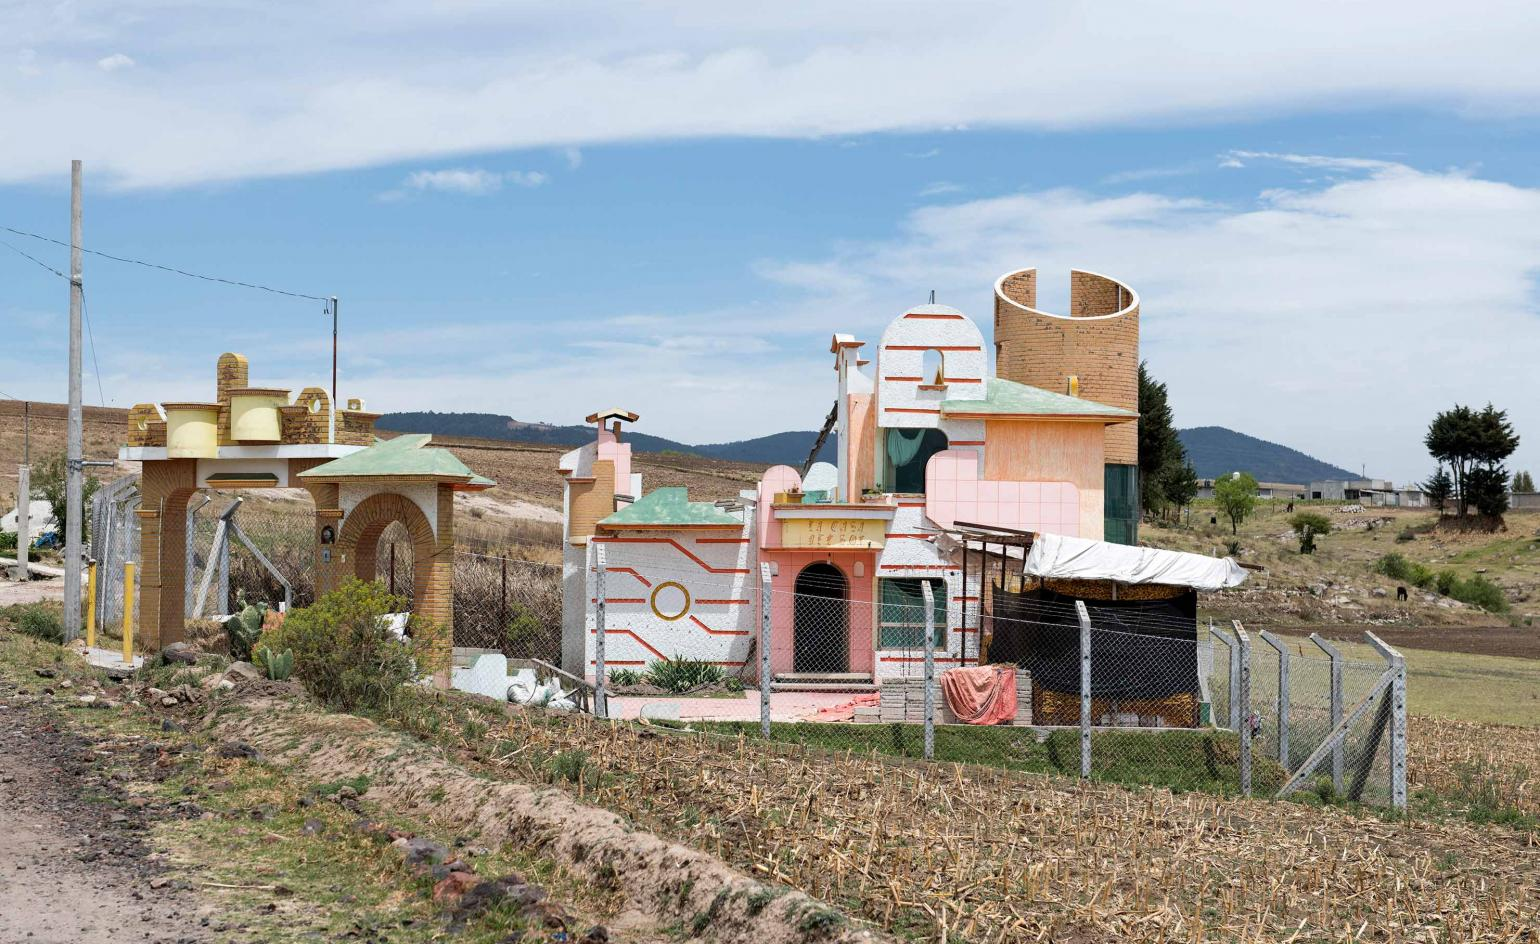 Photographer Adam Wiseman documents self-built houses in rural Mexico